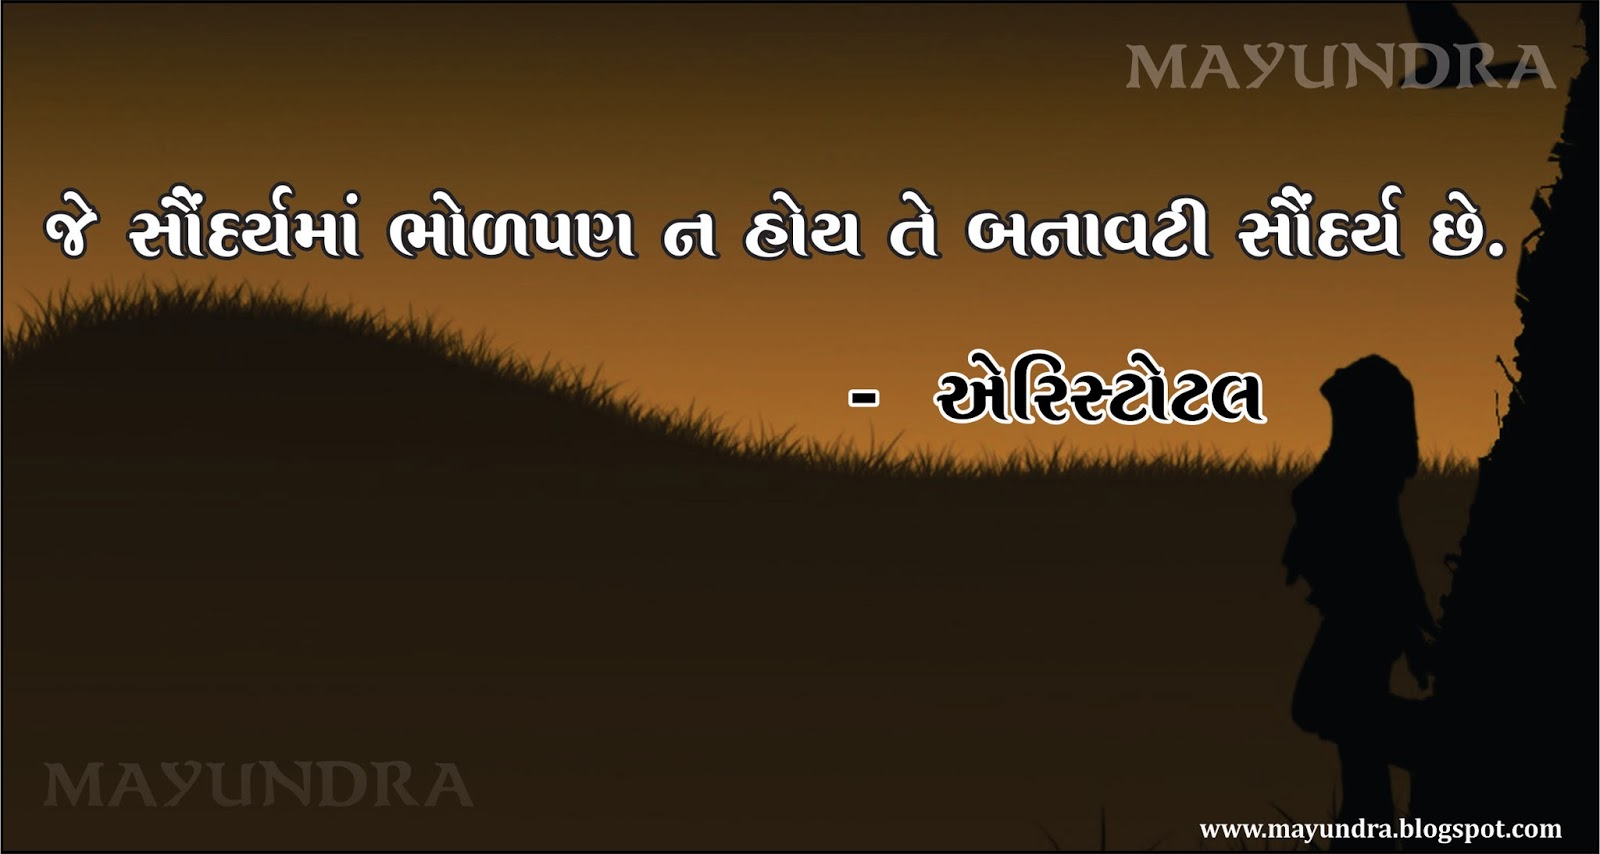 Gujarati Quotes Aristotle Quotes India Quotes Health Tips